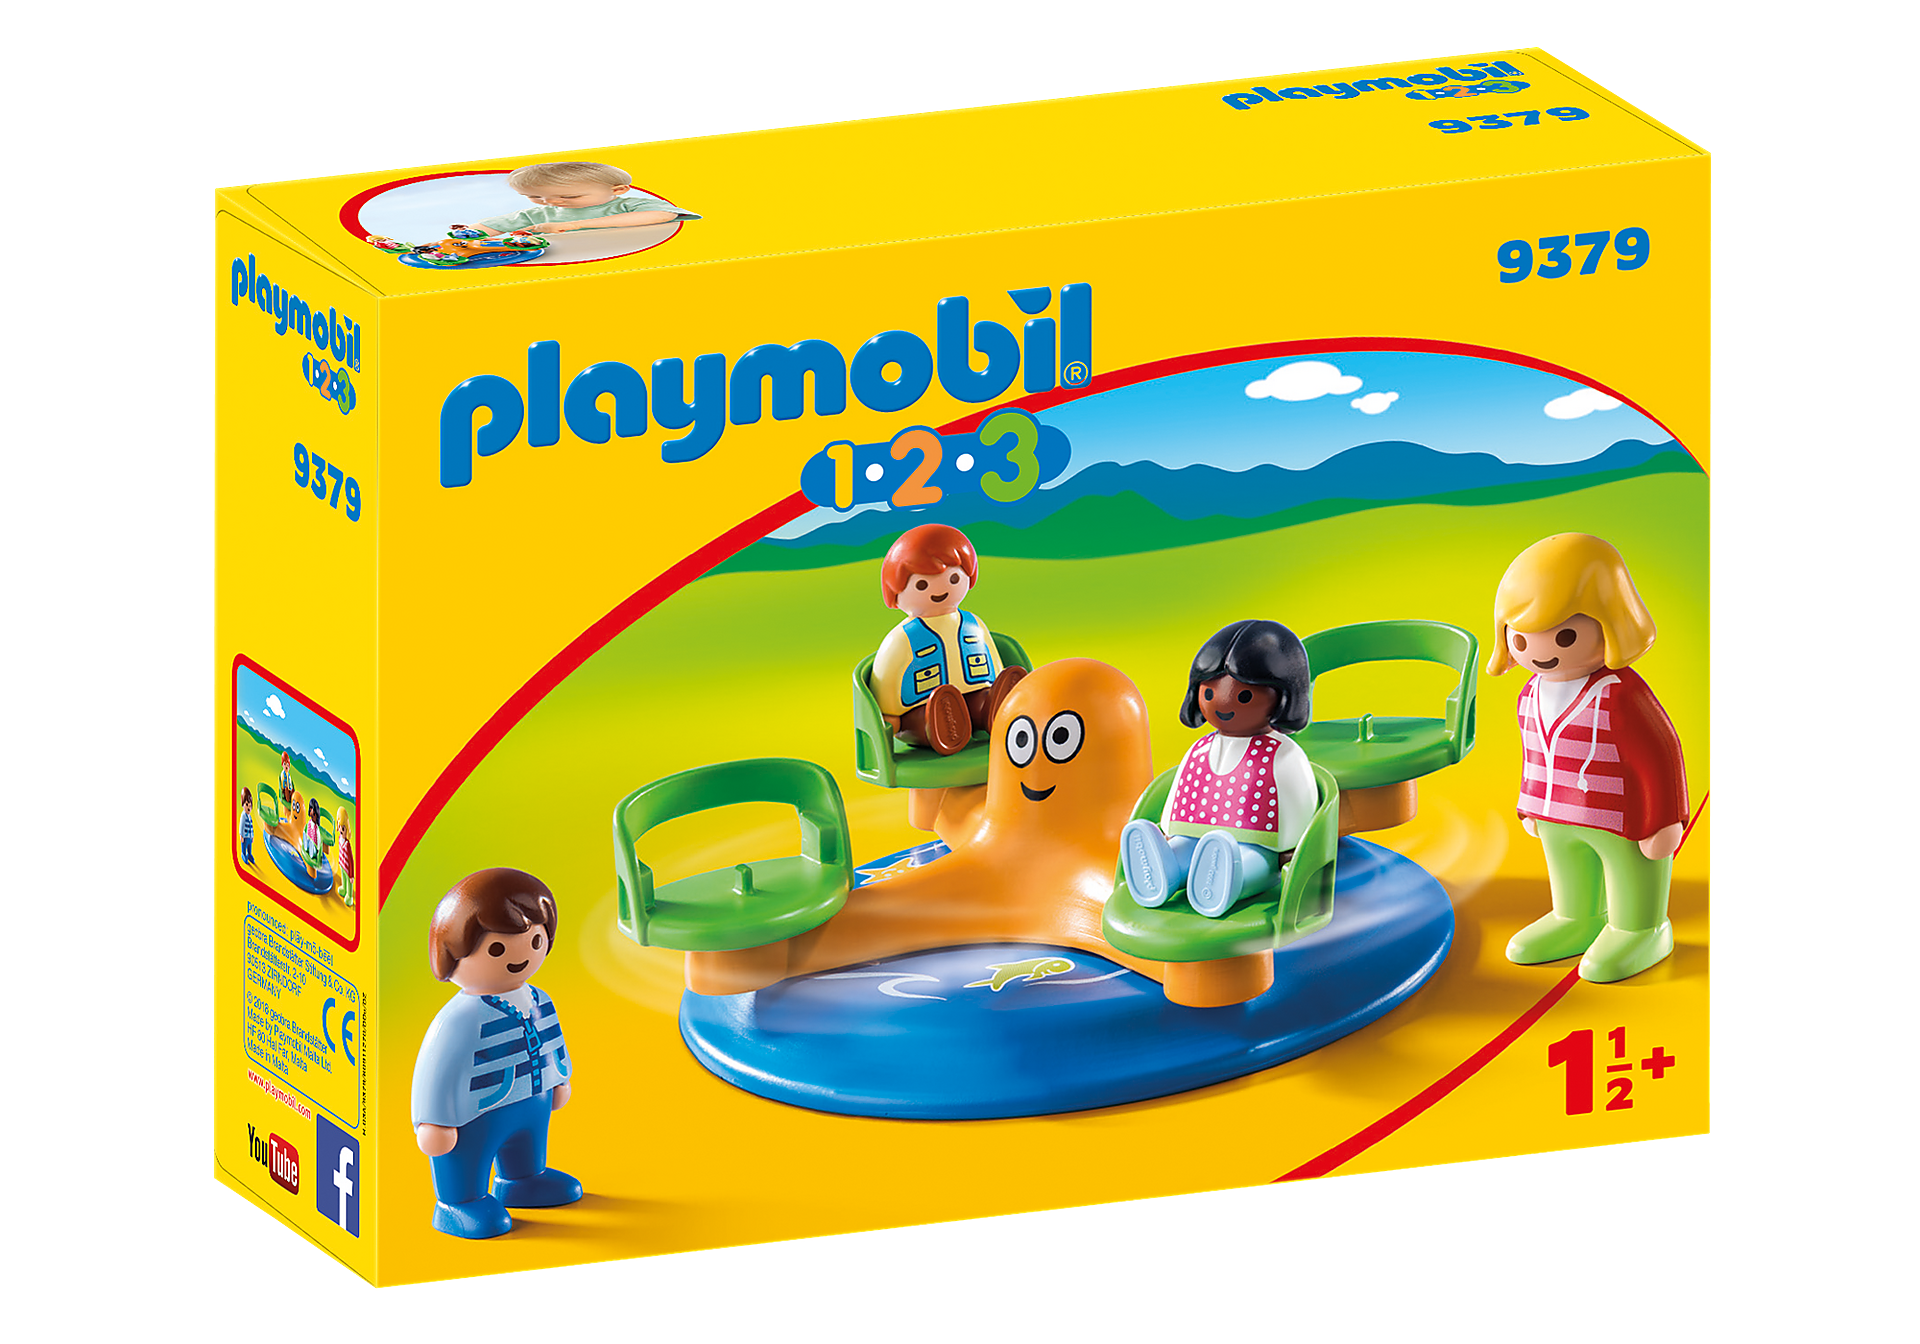 http://media.playmobil.com/i/playmobil/9379_product_box_front/1.2.3 Carrusel Infantil